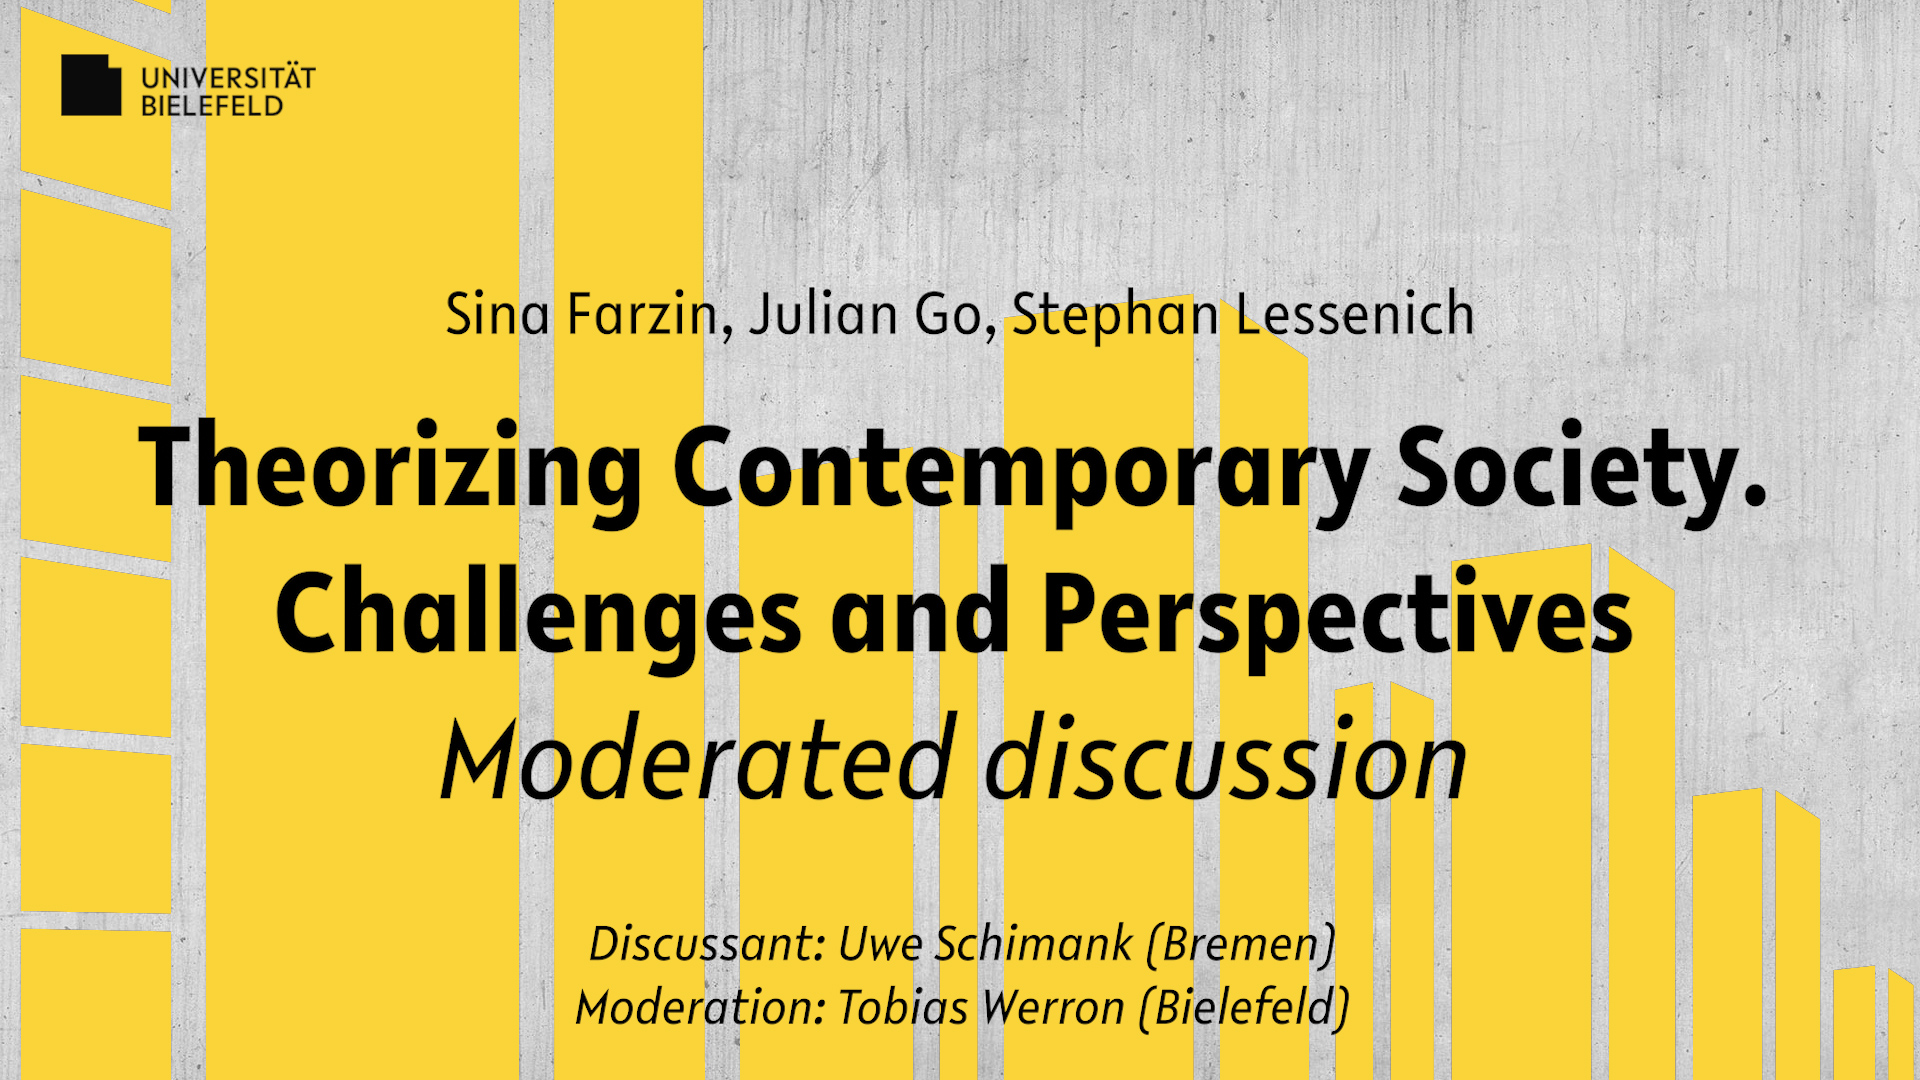 Theorizing Contemporary Society. Challenges and Perspectives